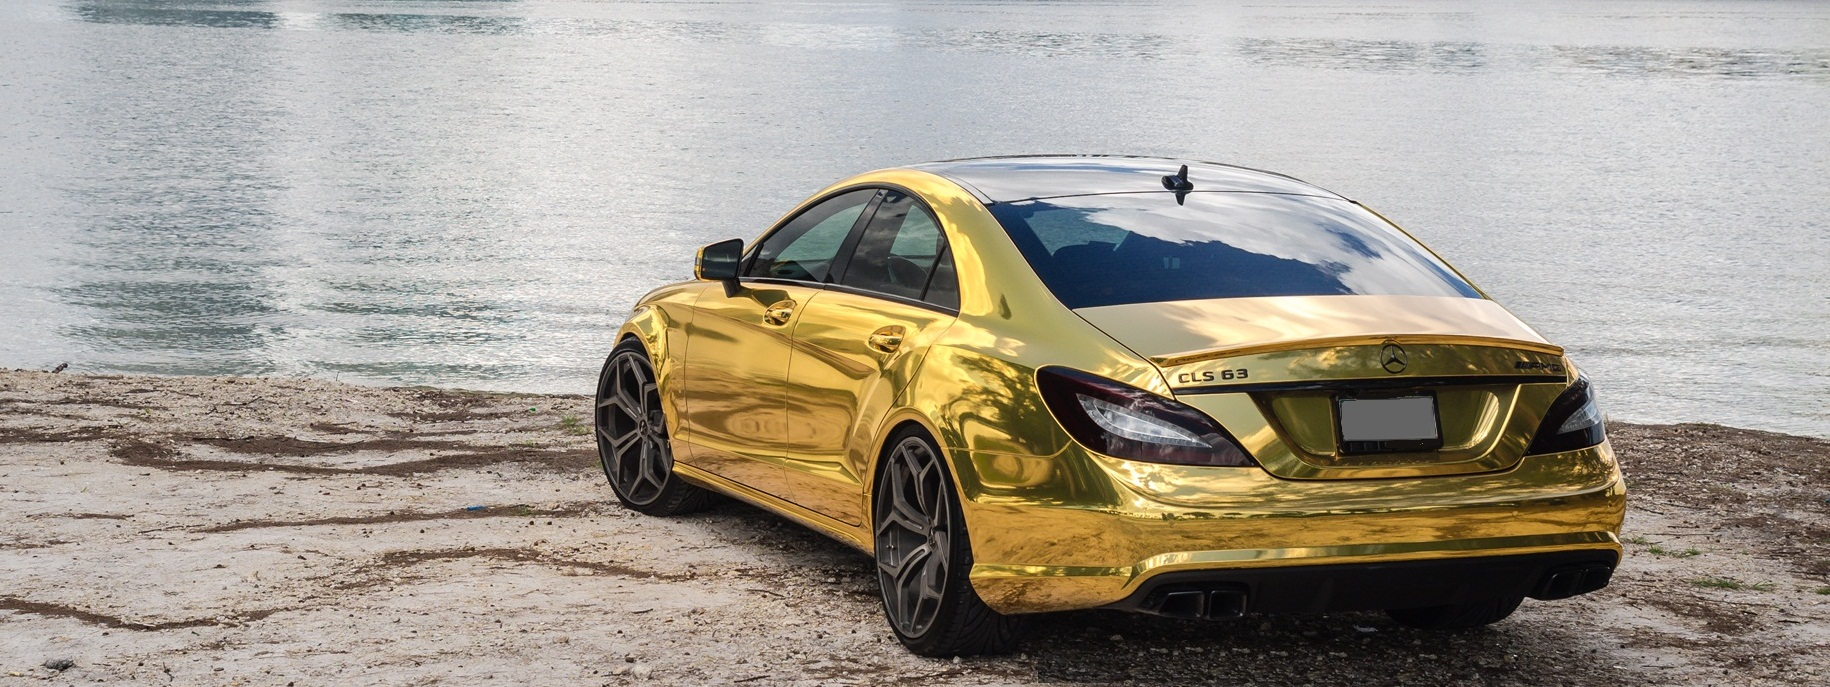 mercedes-cls-63-amg-makes-gold-wrap-and-vellano-wheels-cool-photo-gallery_71